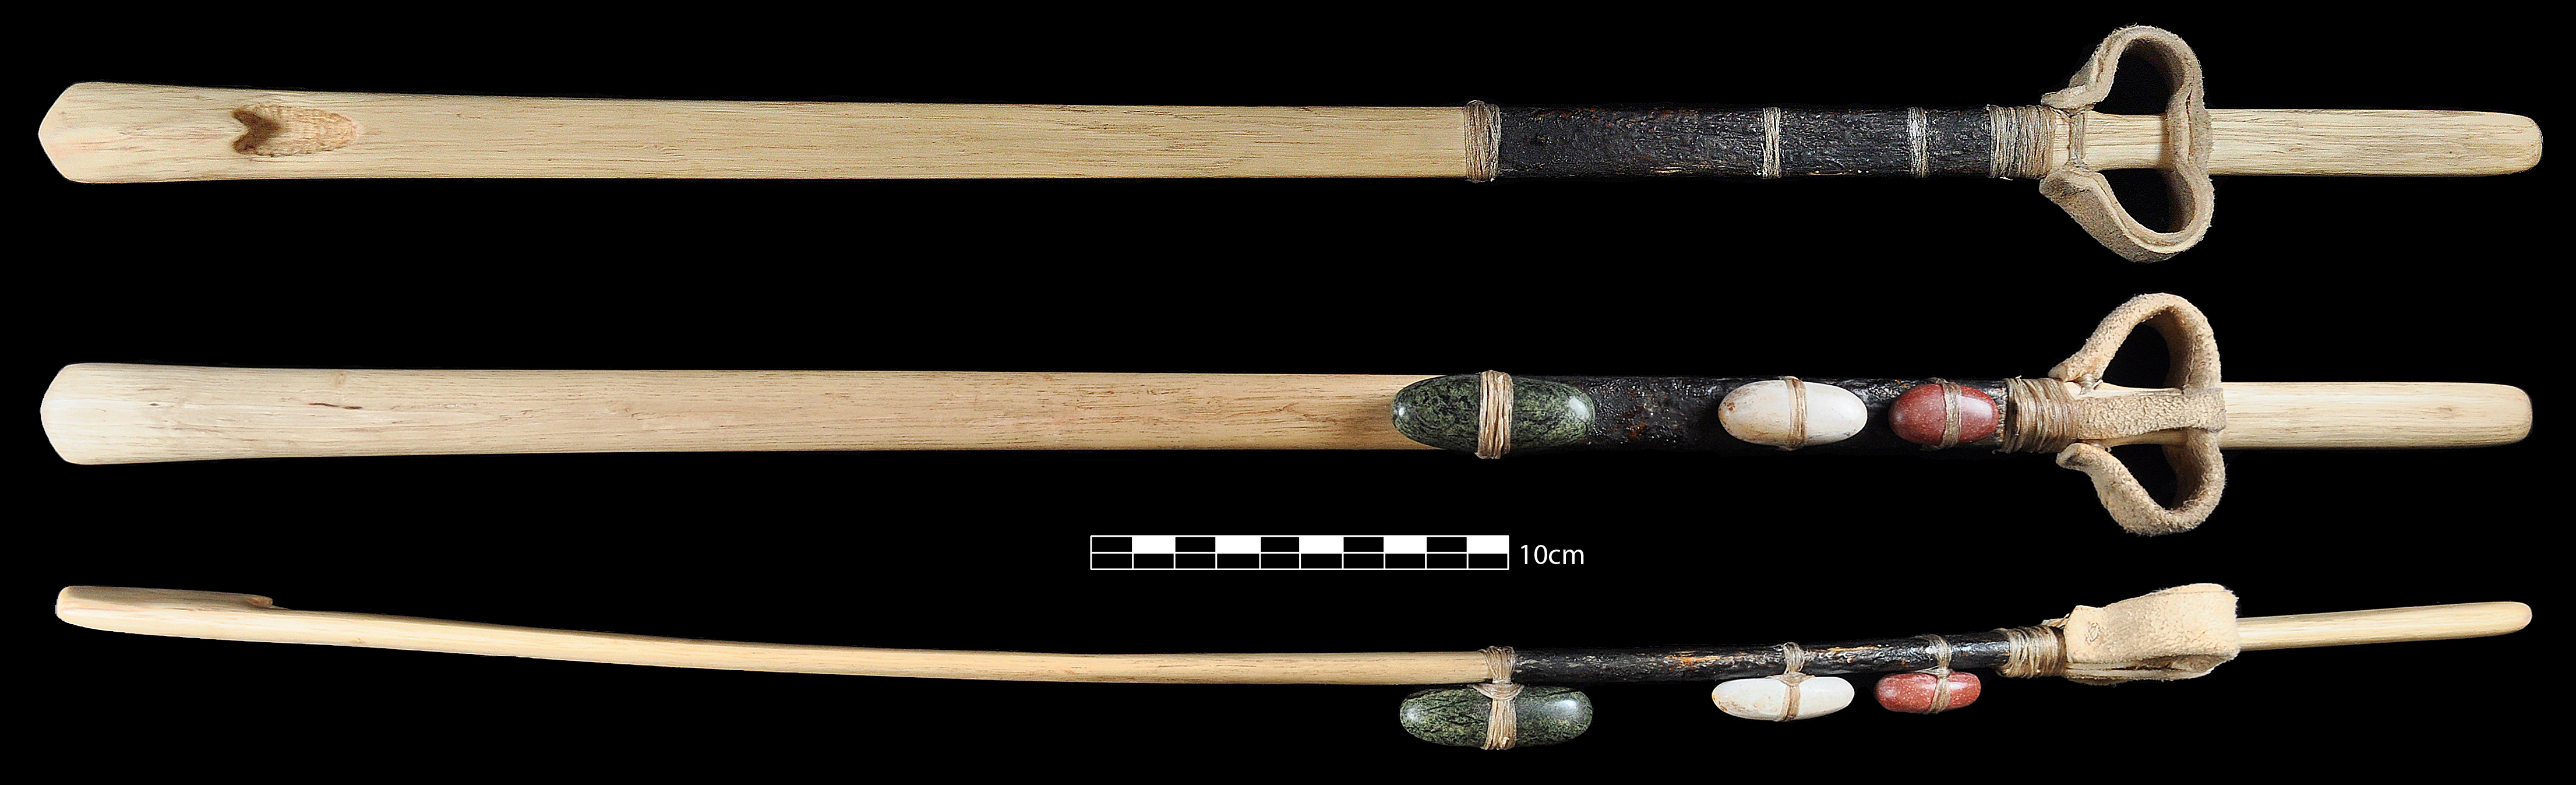 Replica of an atlatl excavated in White Dog Cave, Arizona. Image from Pettigrew and Garnett (2015).